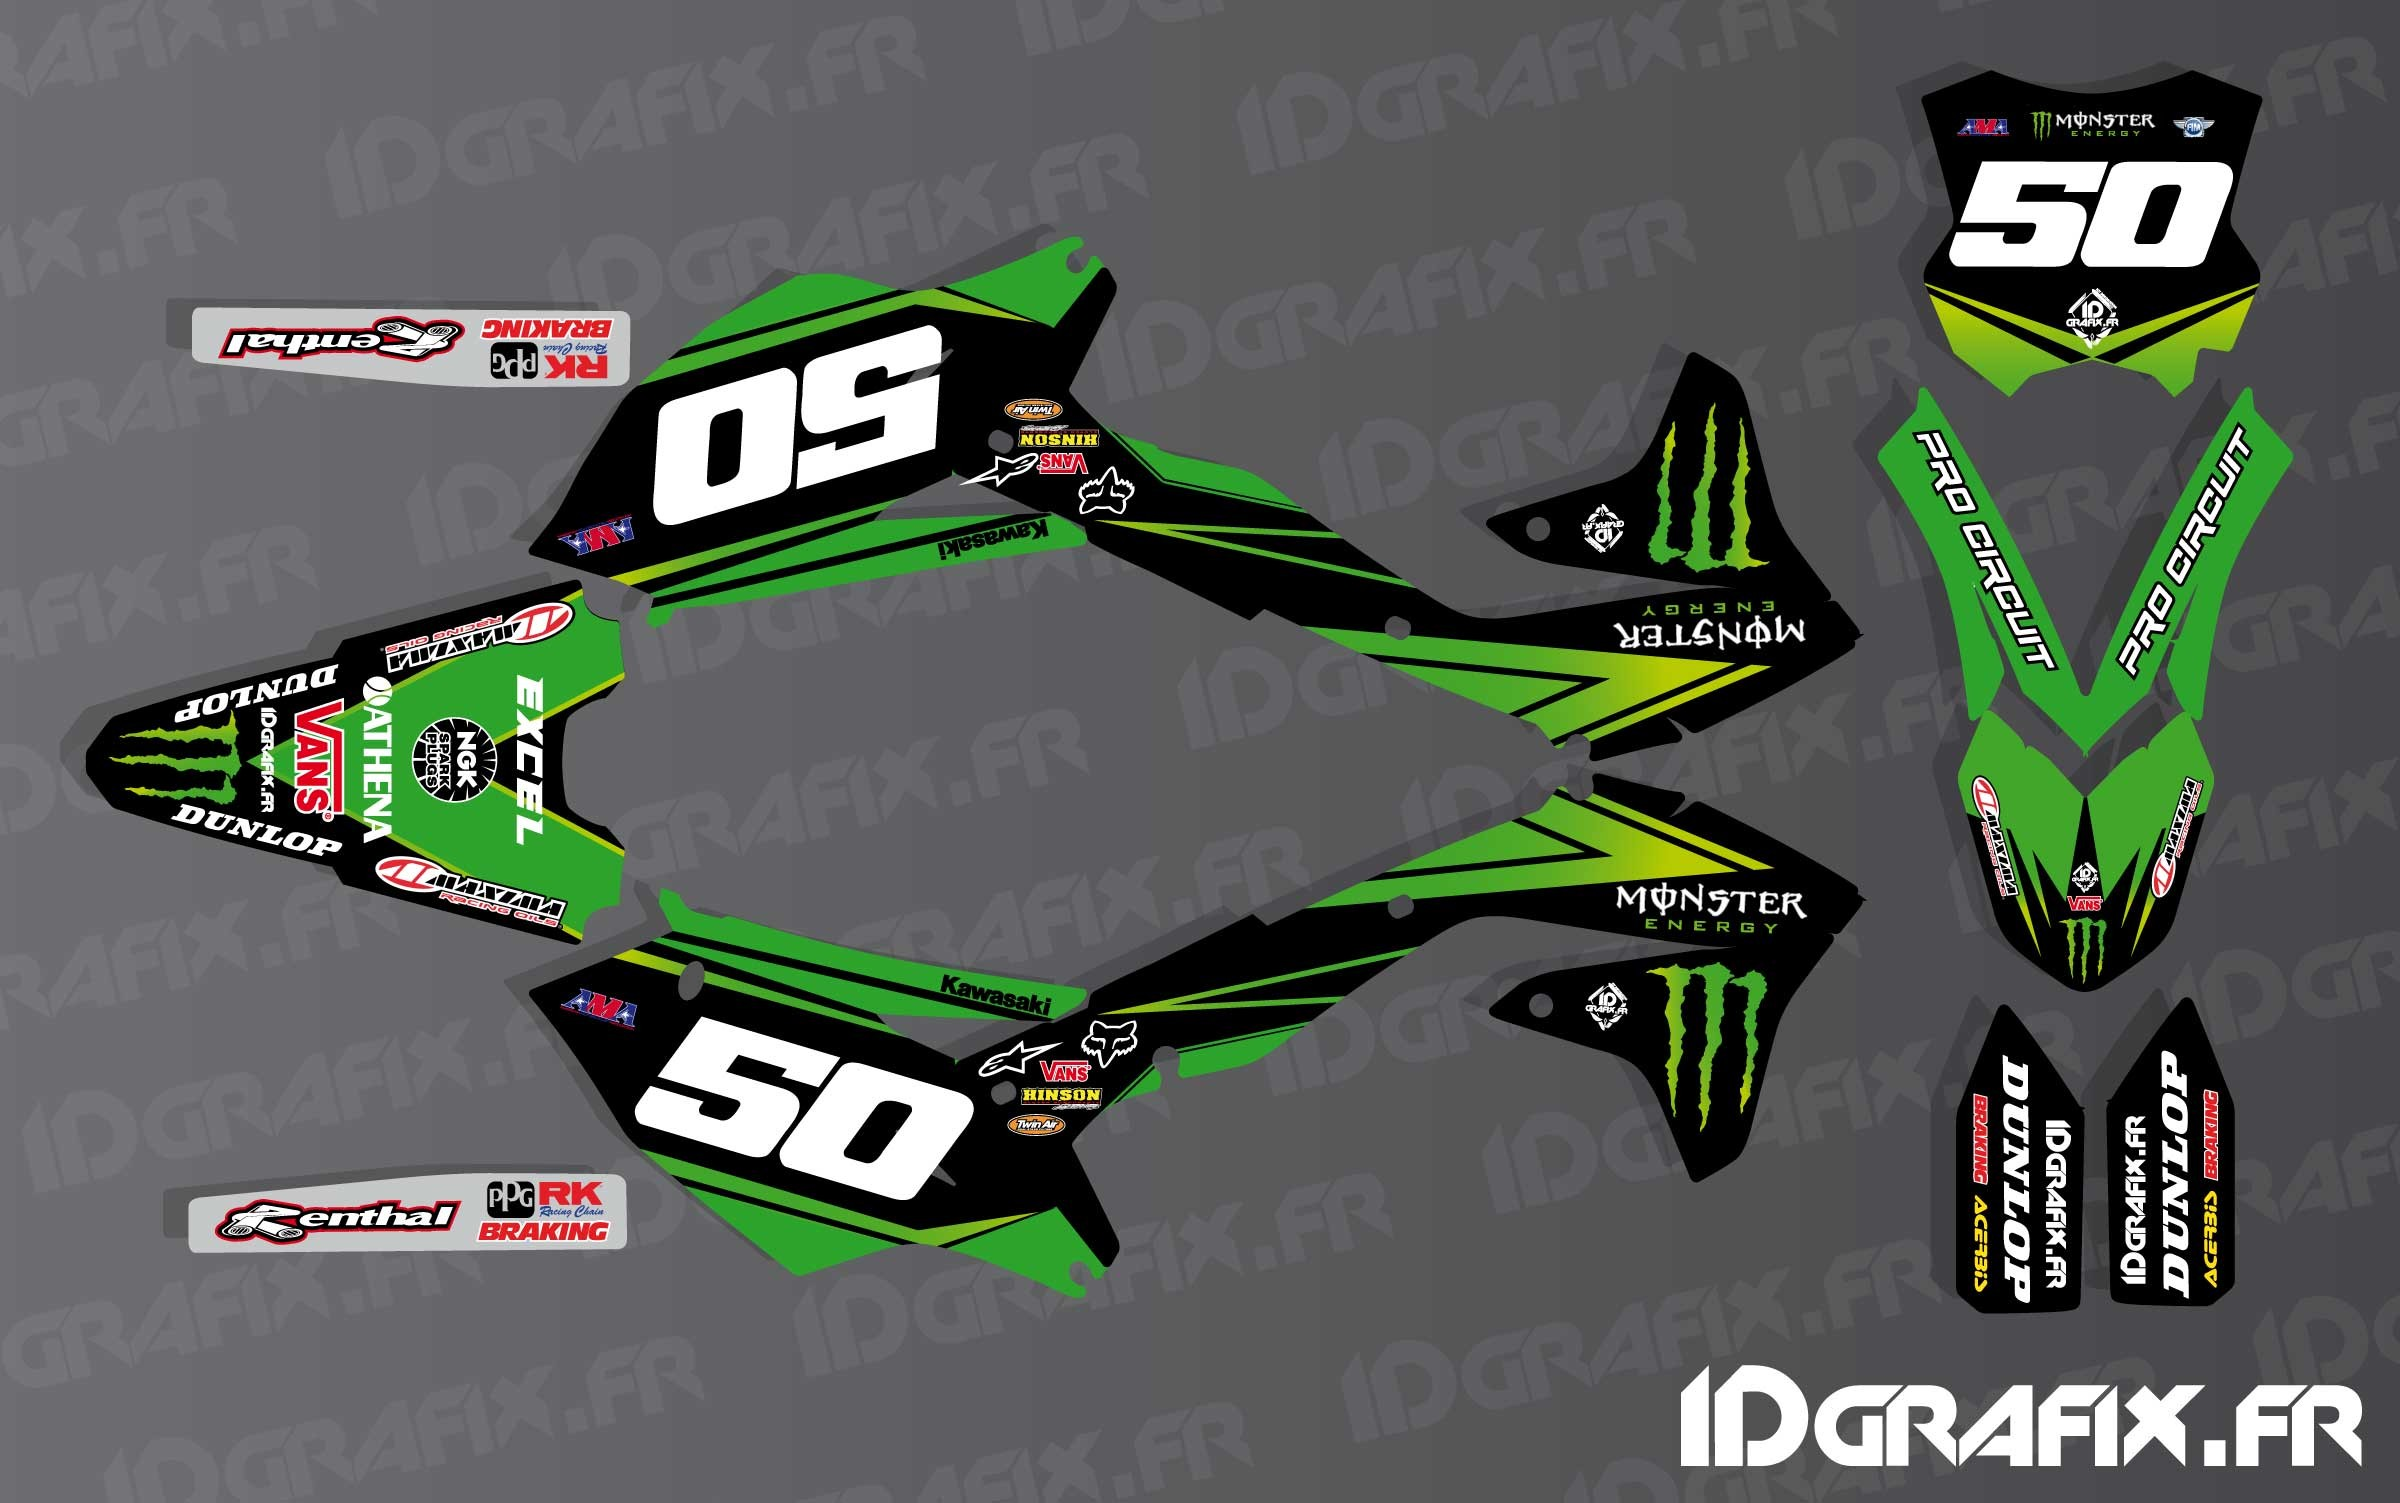 photo du kit décoration , Kit déco US Ama Pro Circuit series pour Kawasaki  KX/